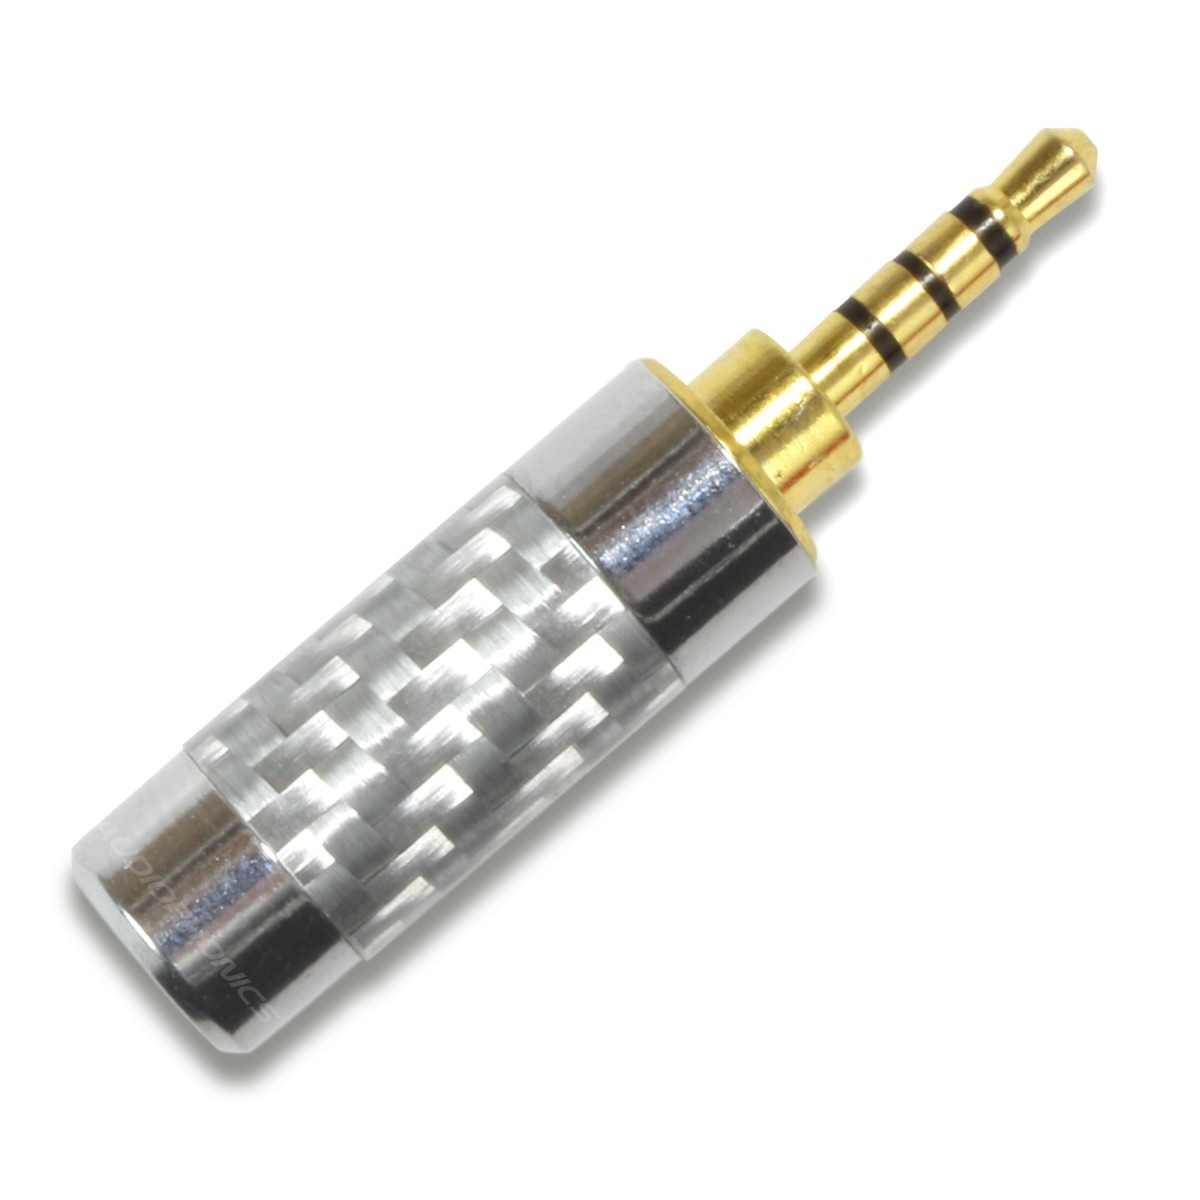 Jack Connector 2.5mm gold plated TRRS Ø4mm (Unit) Silver